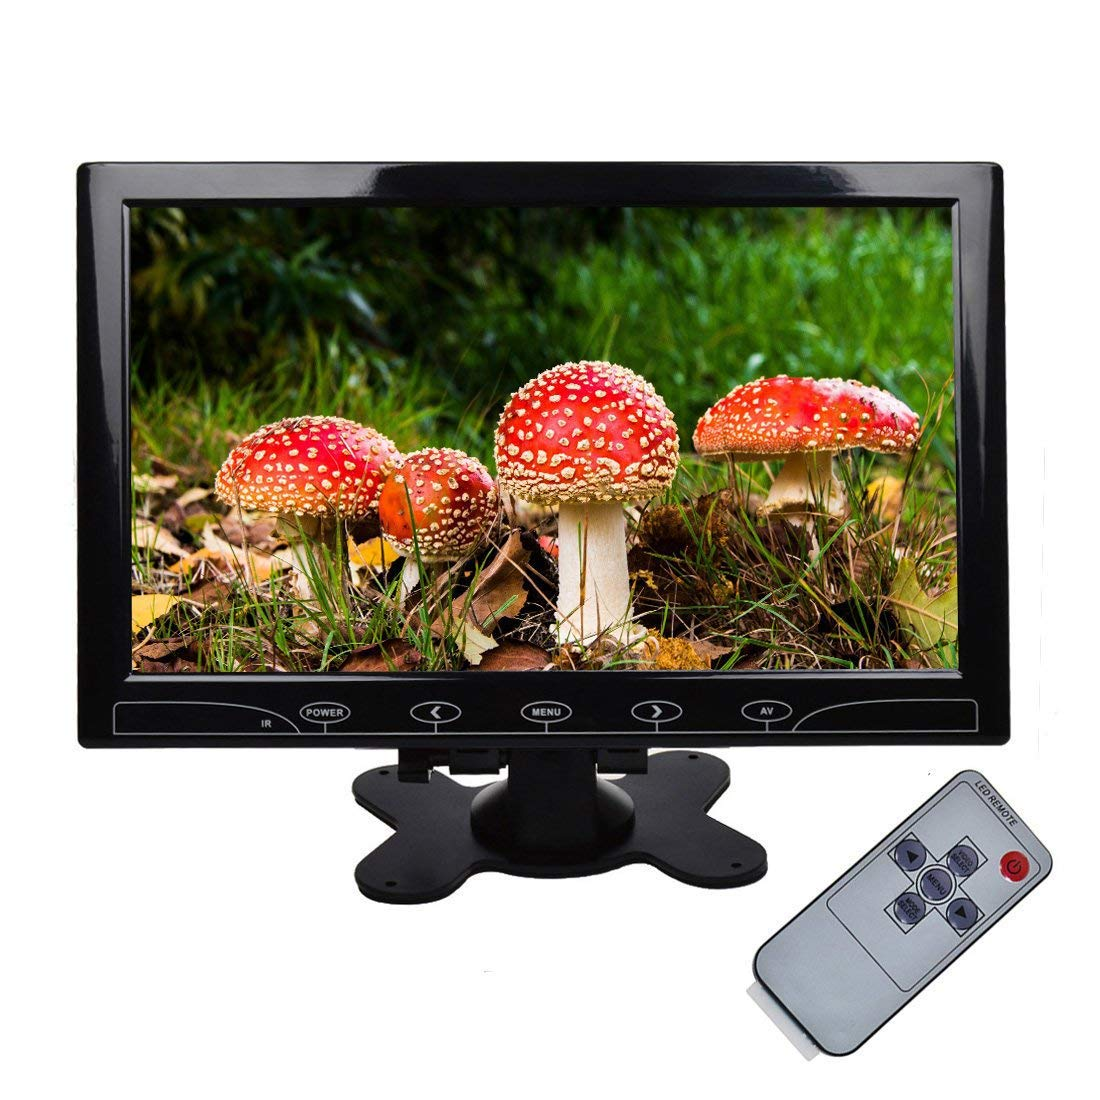 TOGUARD 10.1 inch Ultrathin CCTV Security Monitor HD 1024x600 TFT LCD Color Display Screen with HDMI VGA AV Input, Built-in Speaker, Touch Keys, Remote Control for Raspberry Pi Computer Use by TOGUARD